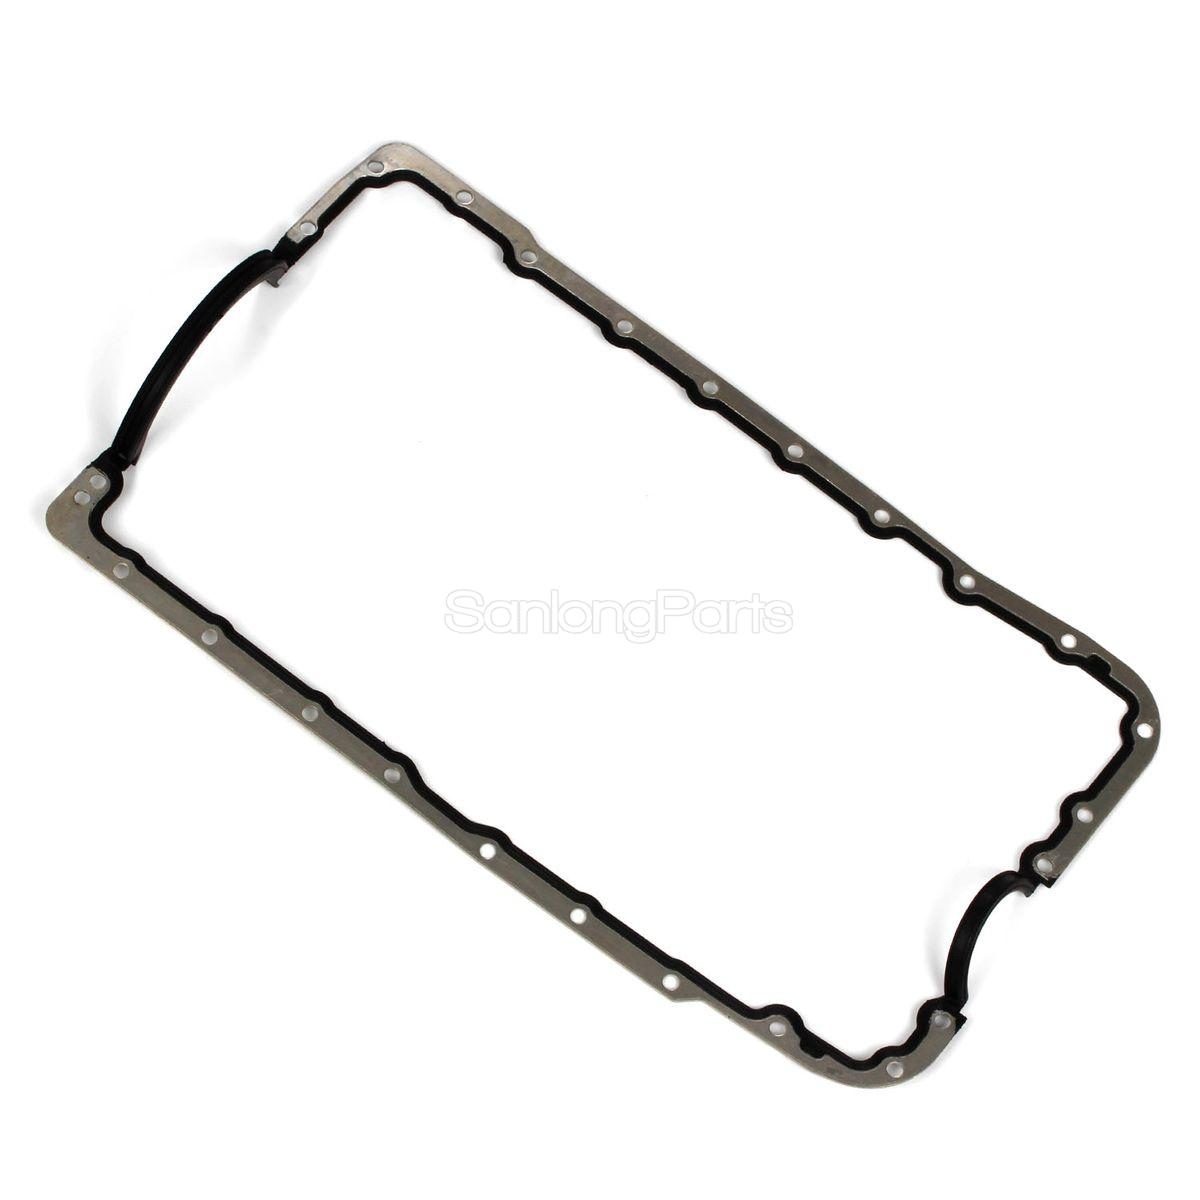 Oil Pan Gasket Set Fits 94-11 FORD AEROSTAR EXPLORER